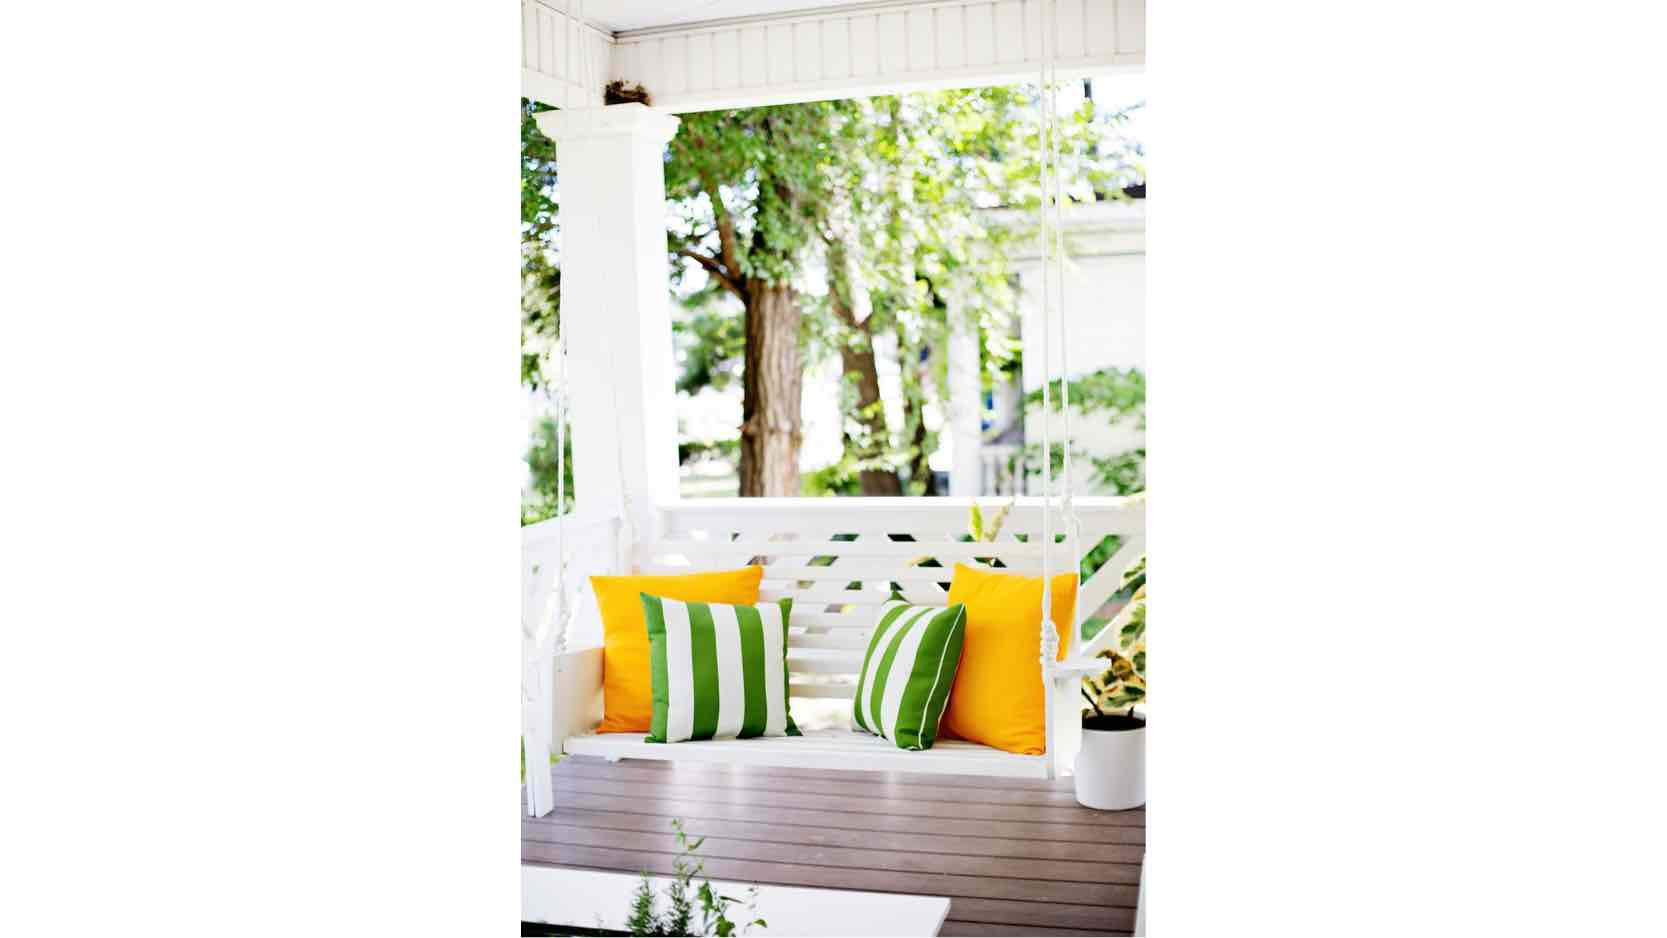 porch swings,wooden,hanging swings,diy,free woodworking plans,free projects,do it yourself